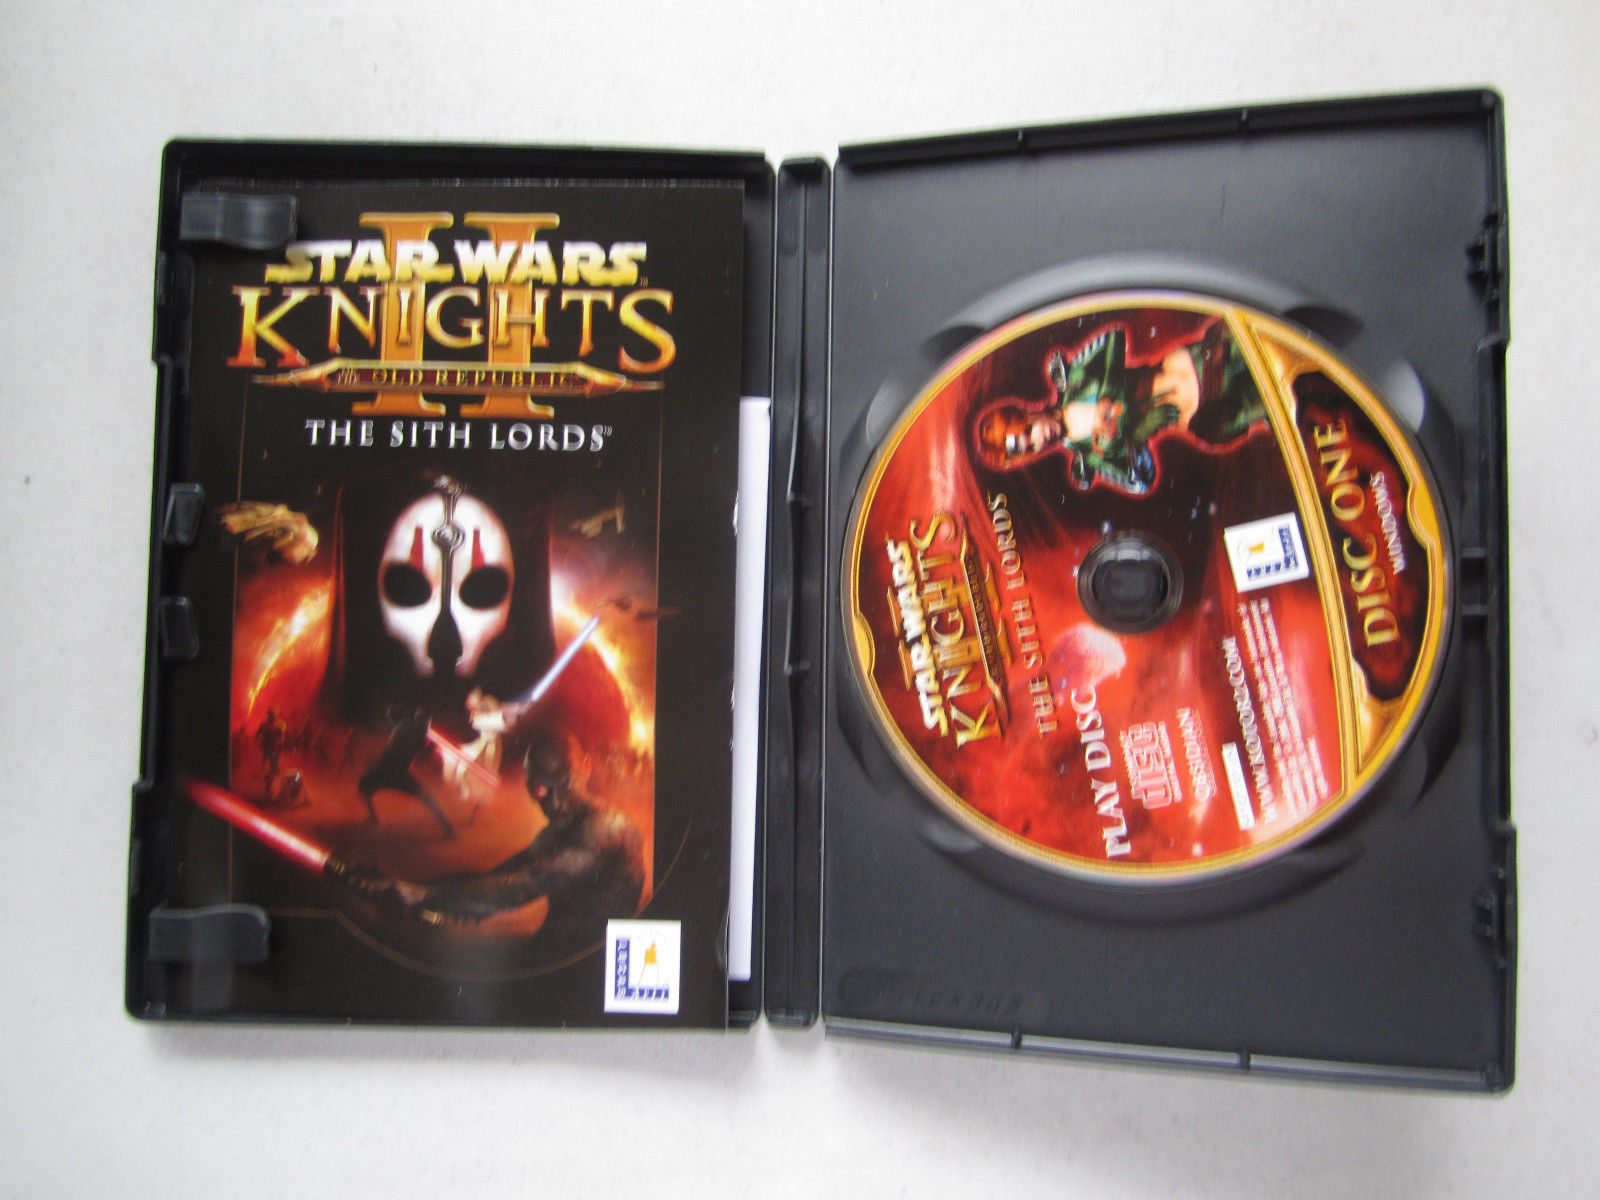 Star Wars: Knights of the Old Republic II - The Sith Lords (PC, 2005) FREE SHIP